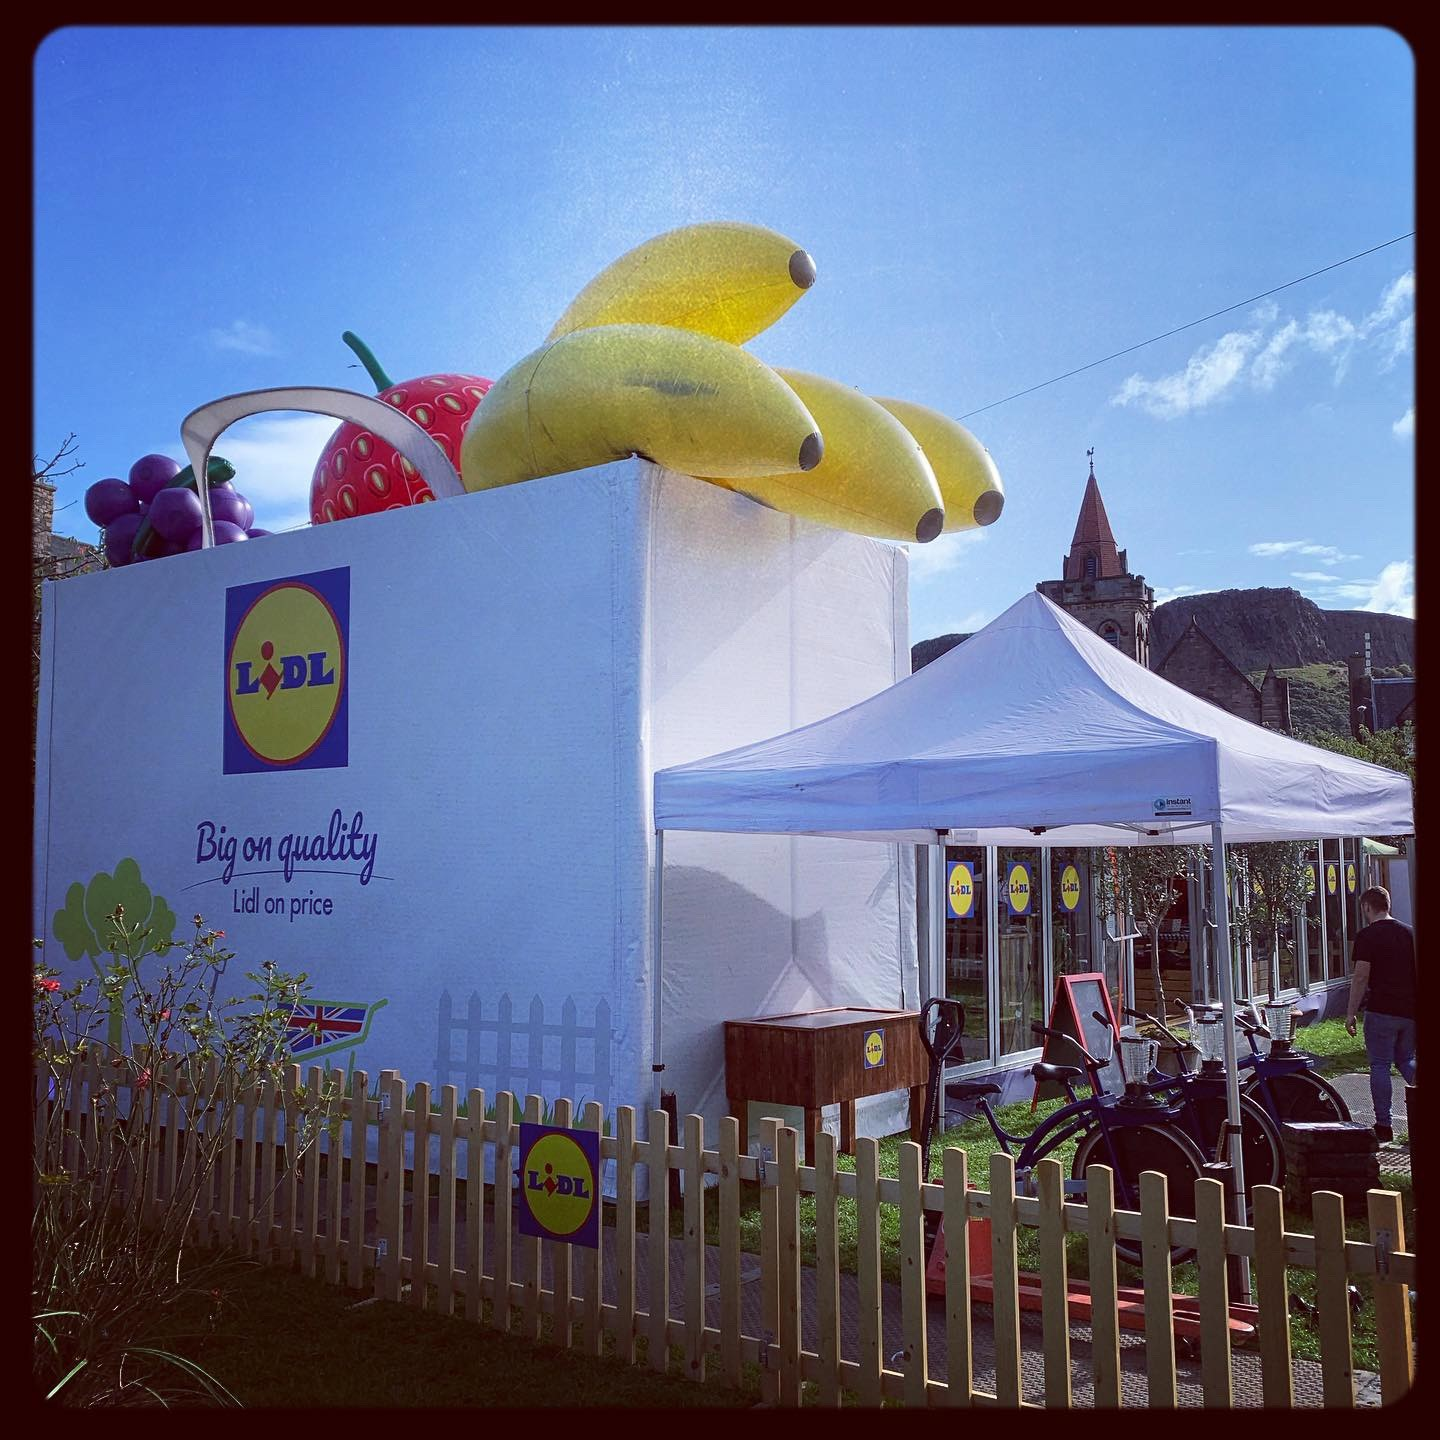 Lidl Gardens at the Fringe